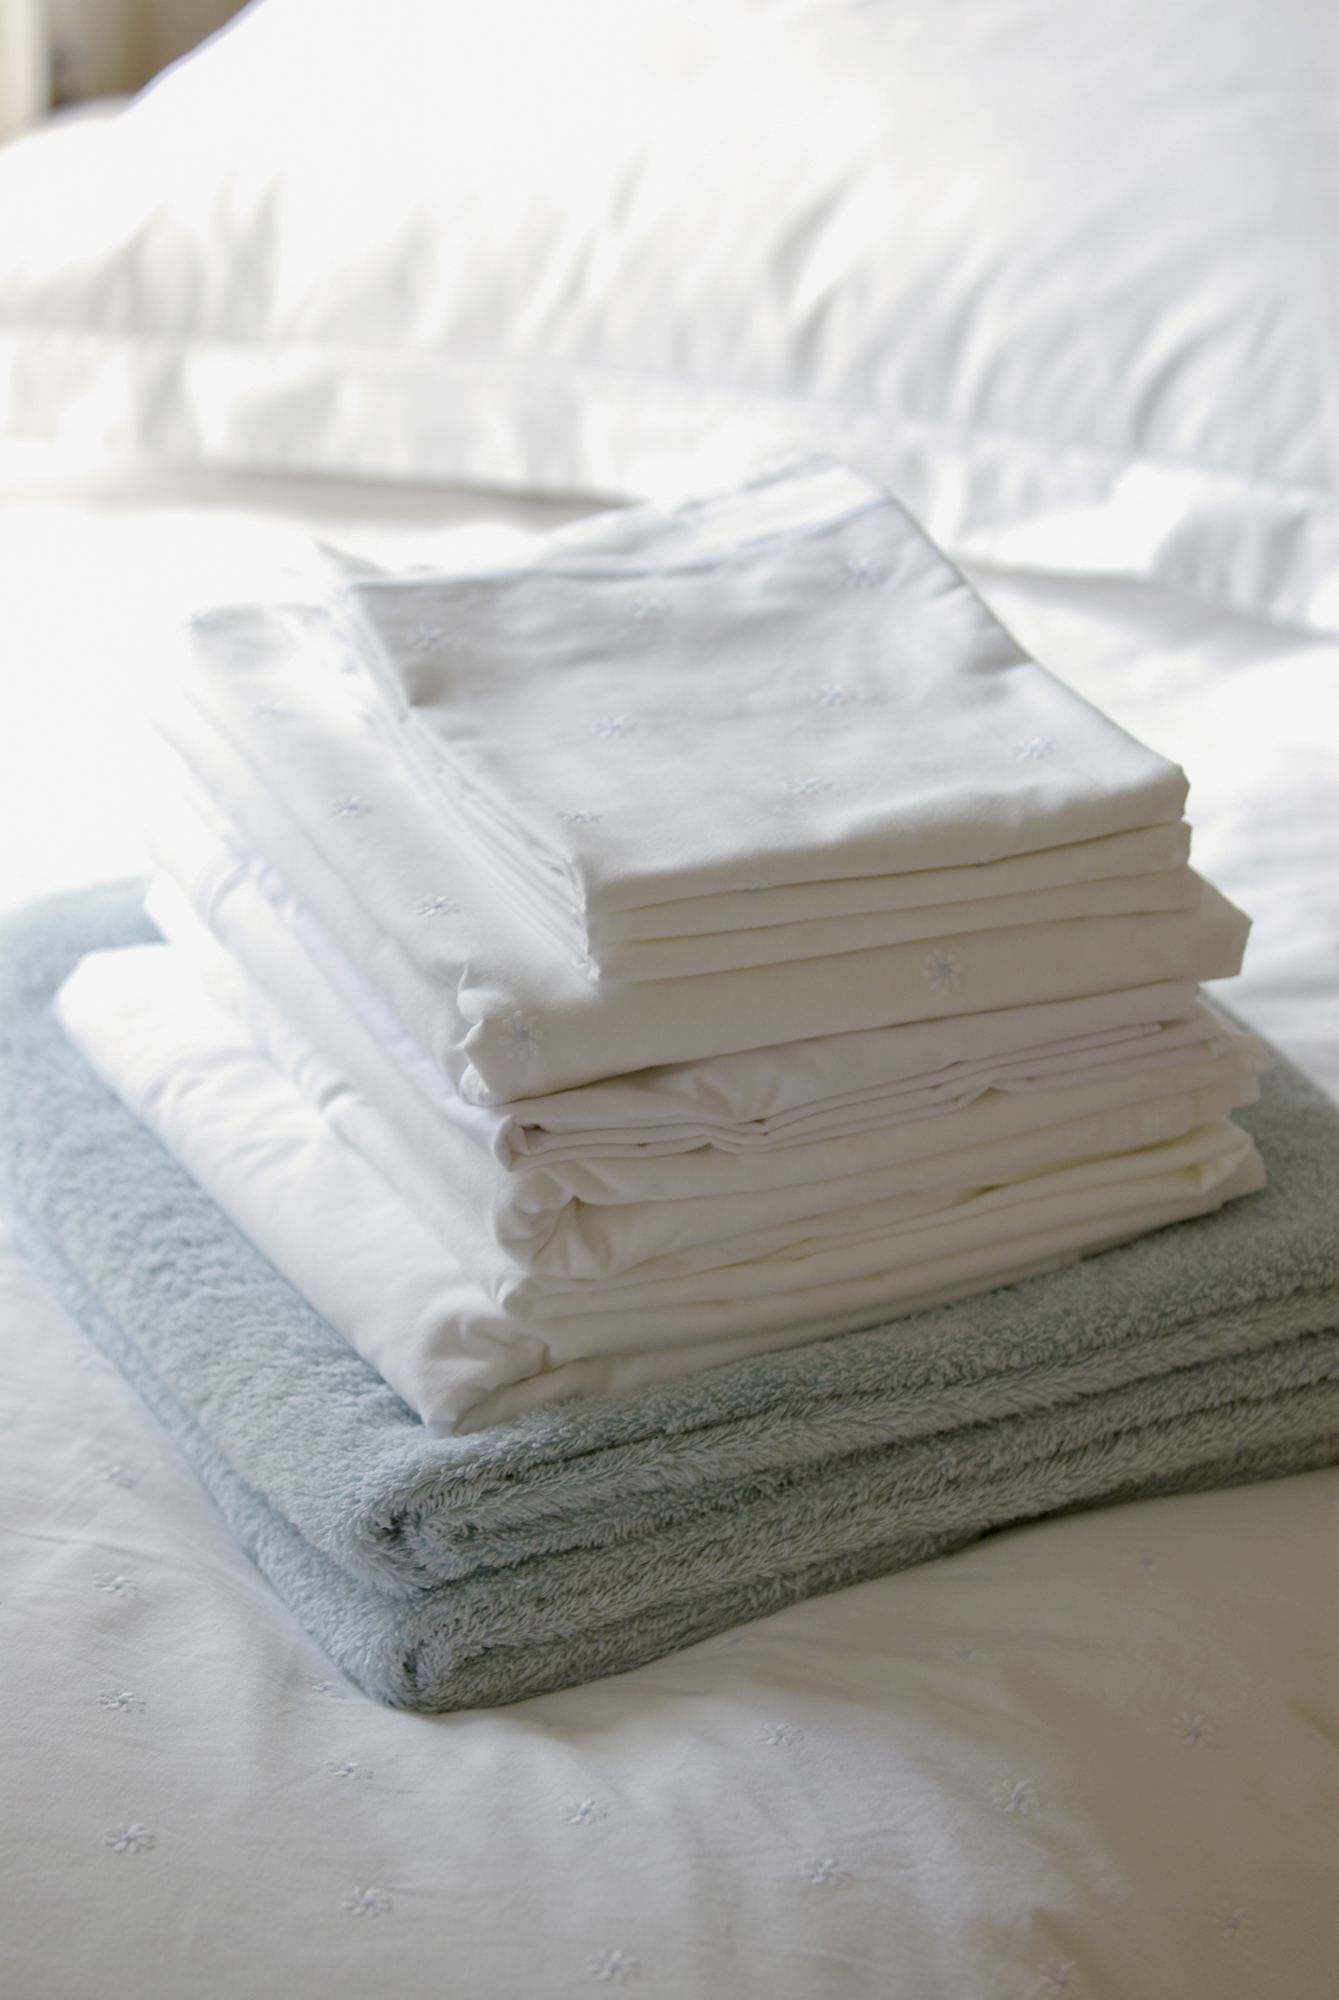 Stack of folded sheets and towels